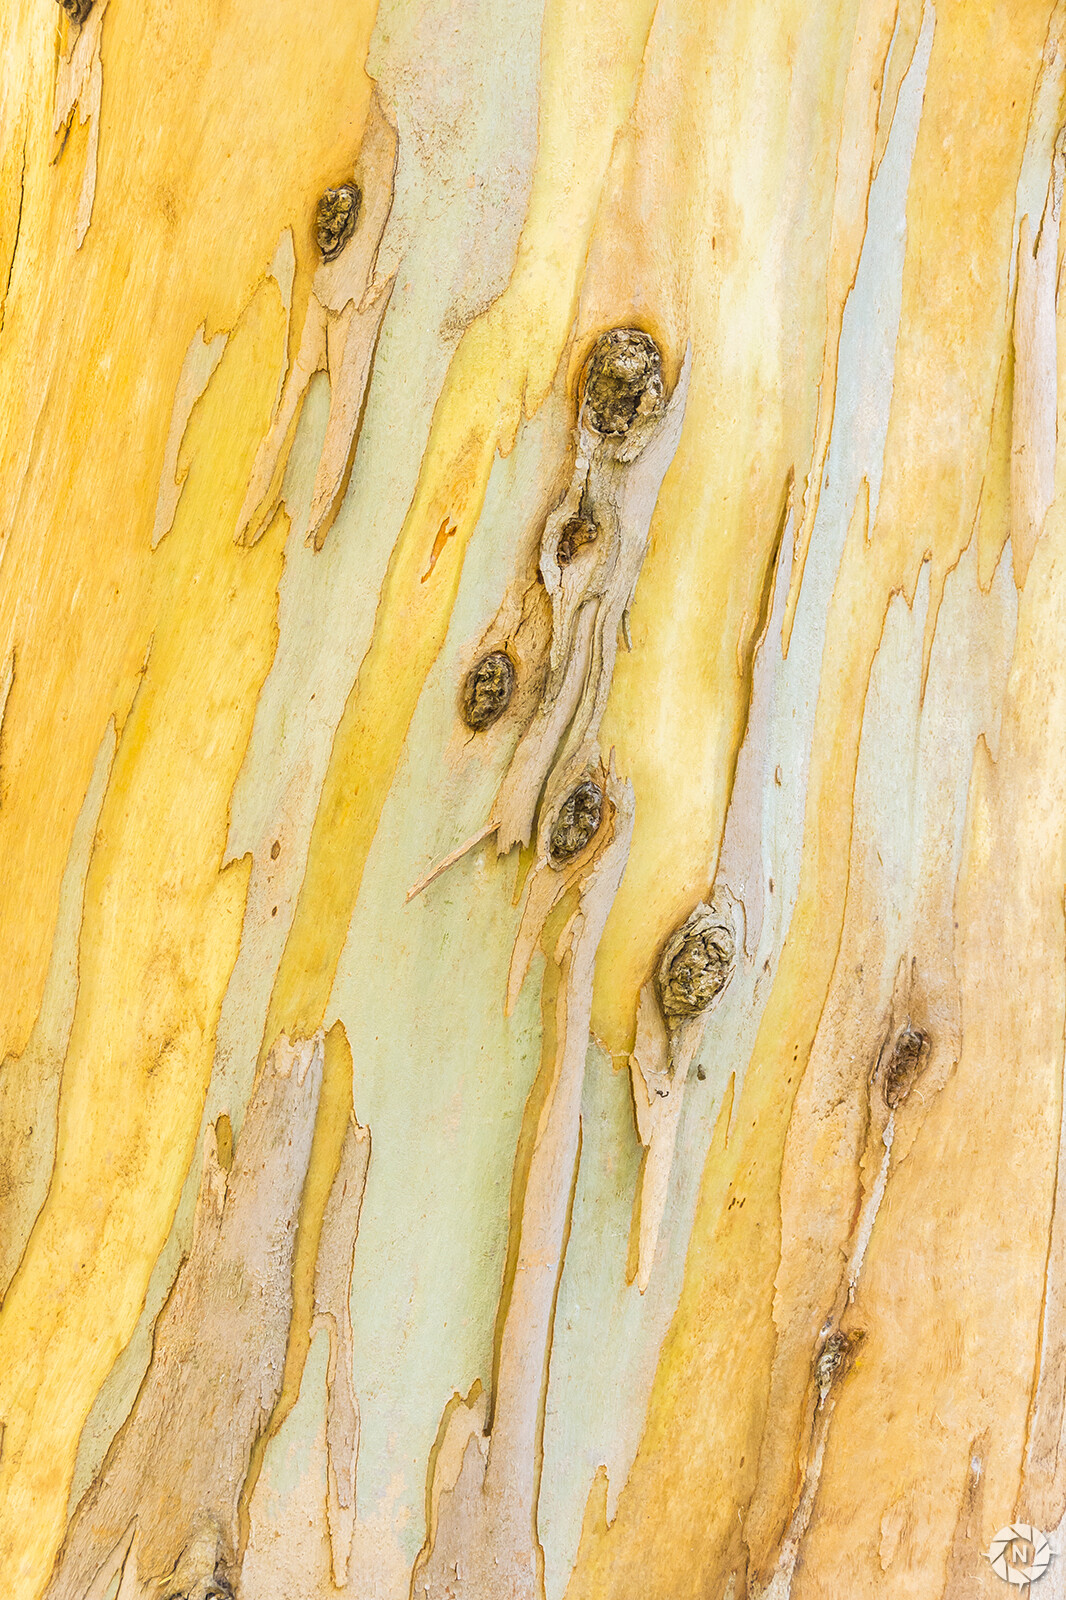 From the Texture Photo Pack: Tree Barks Volume 4  https://www.artstation.com/a/165844